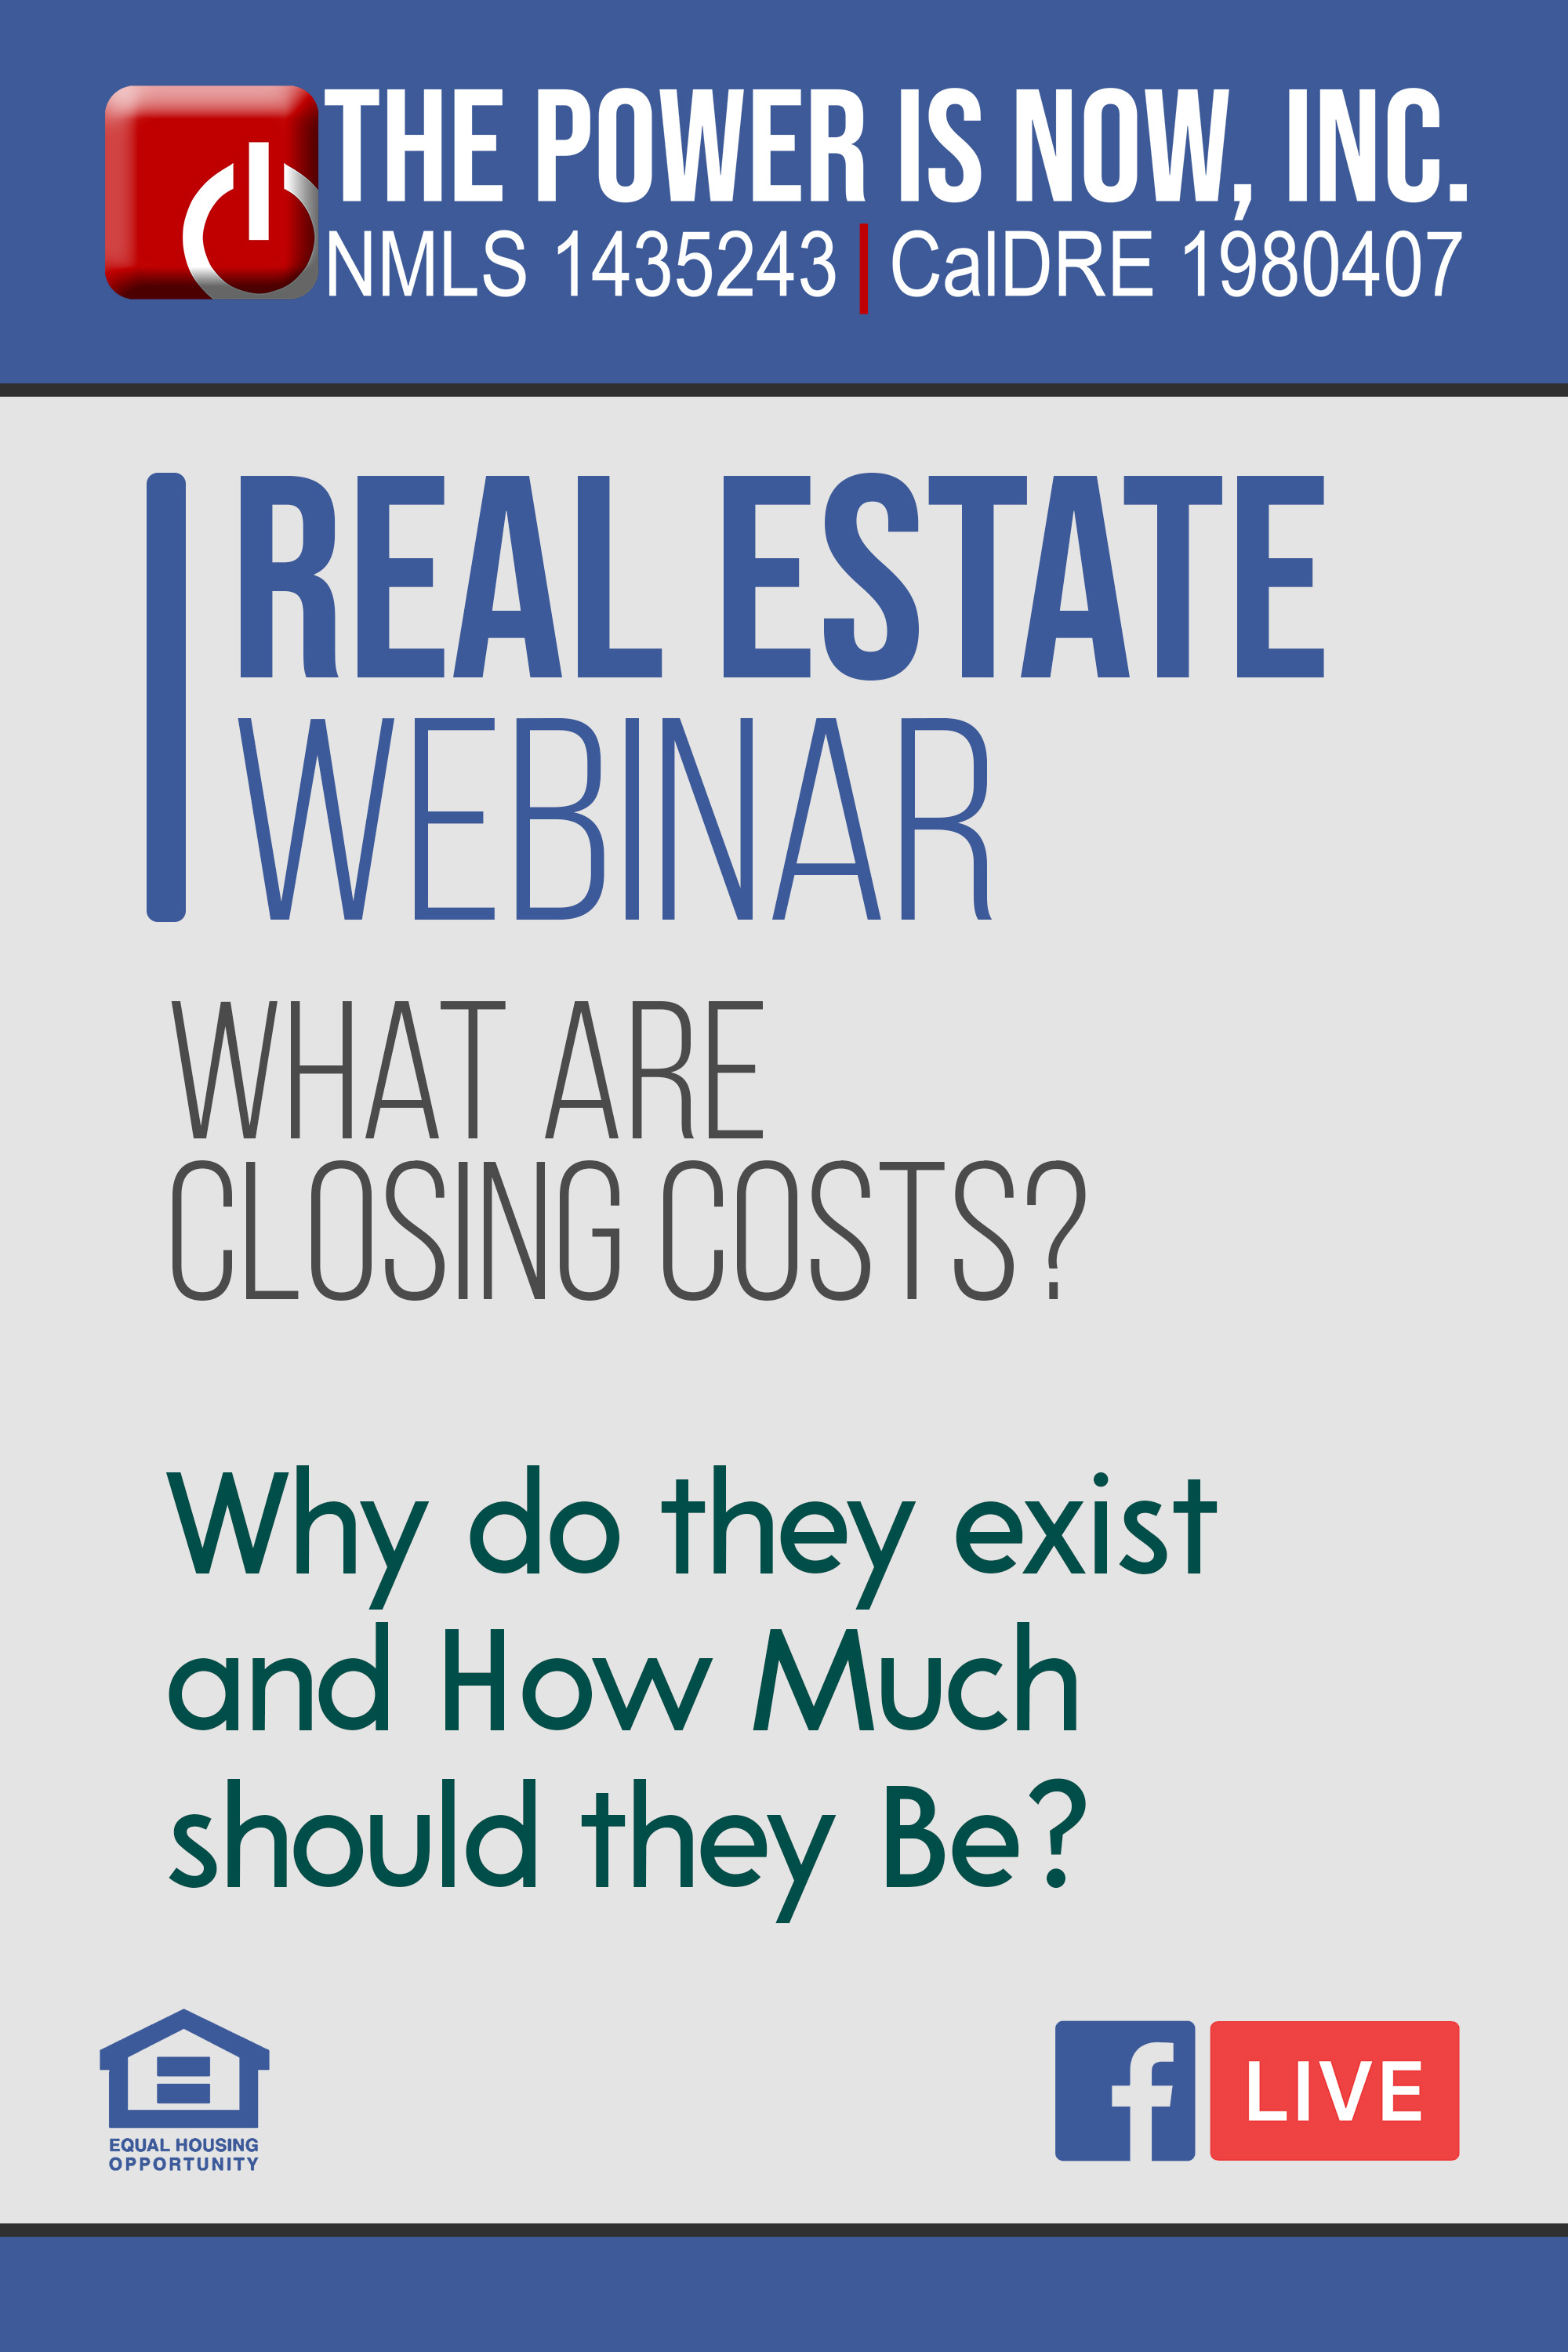 What are Closing Costs?  | Why do they exist and How Much should they Be?